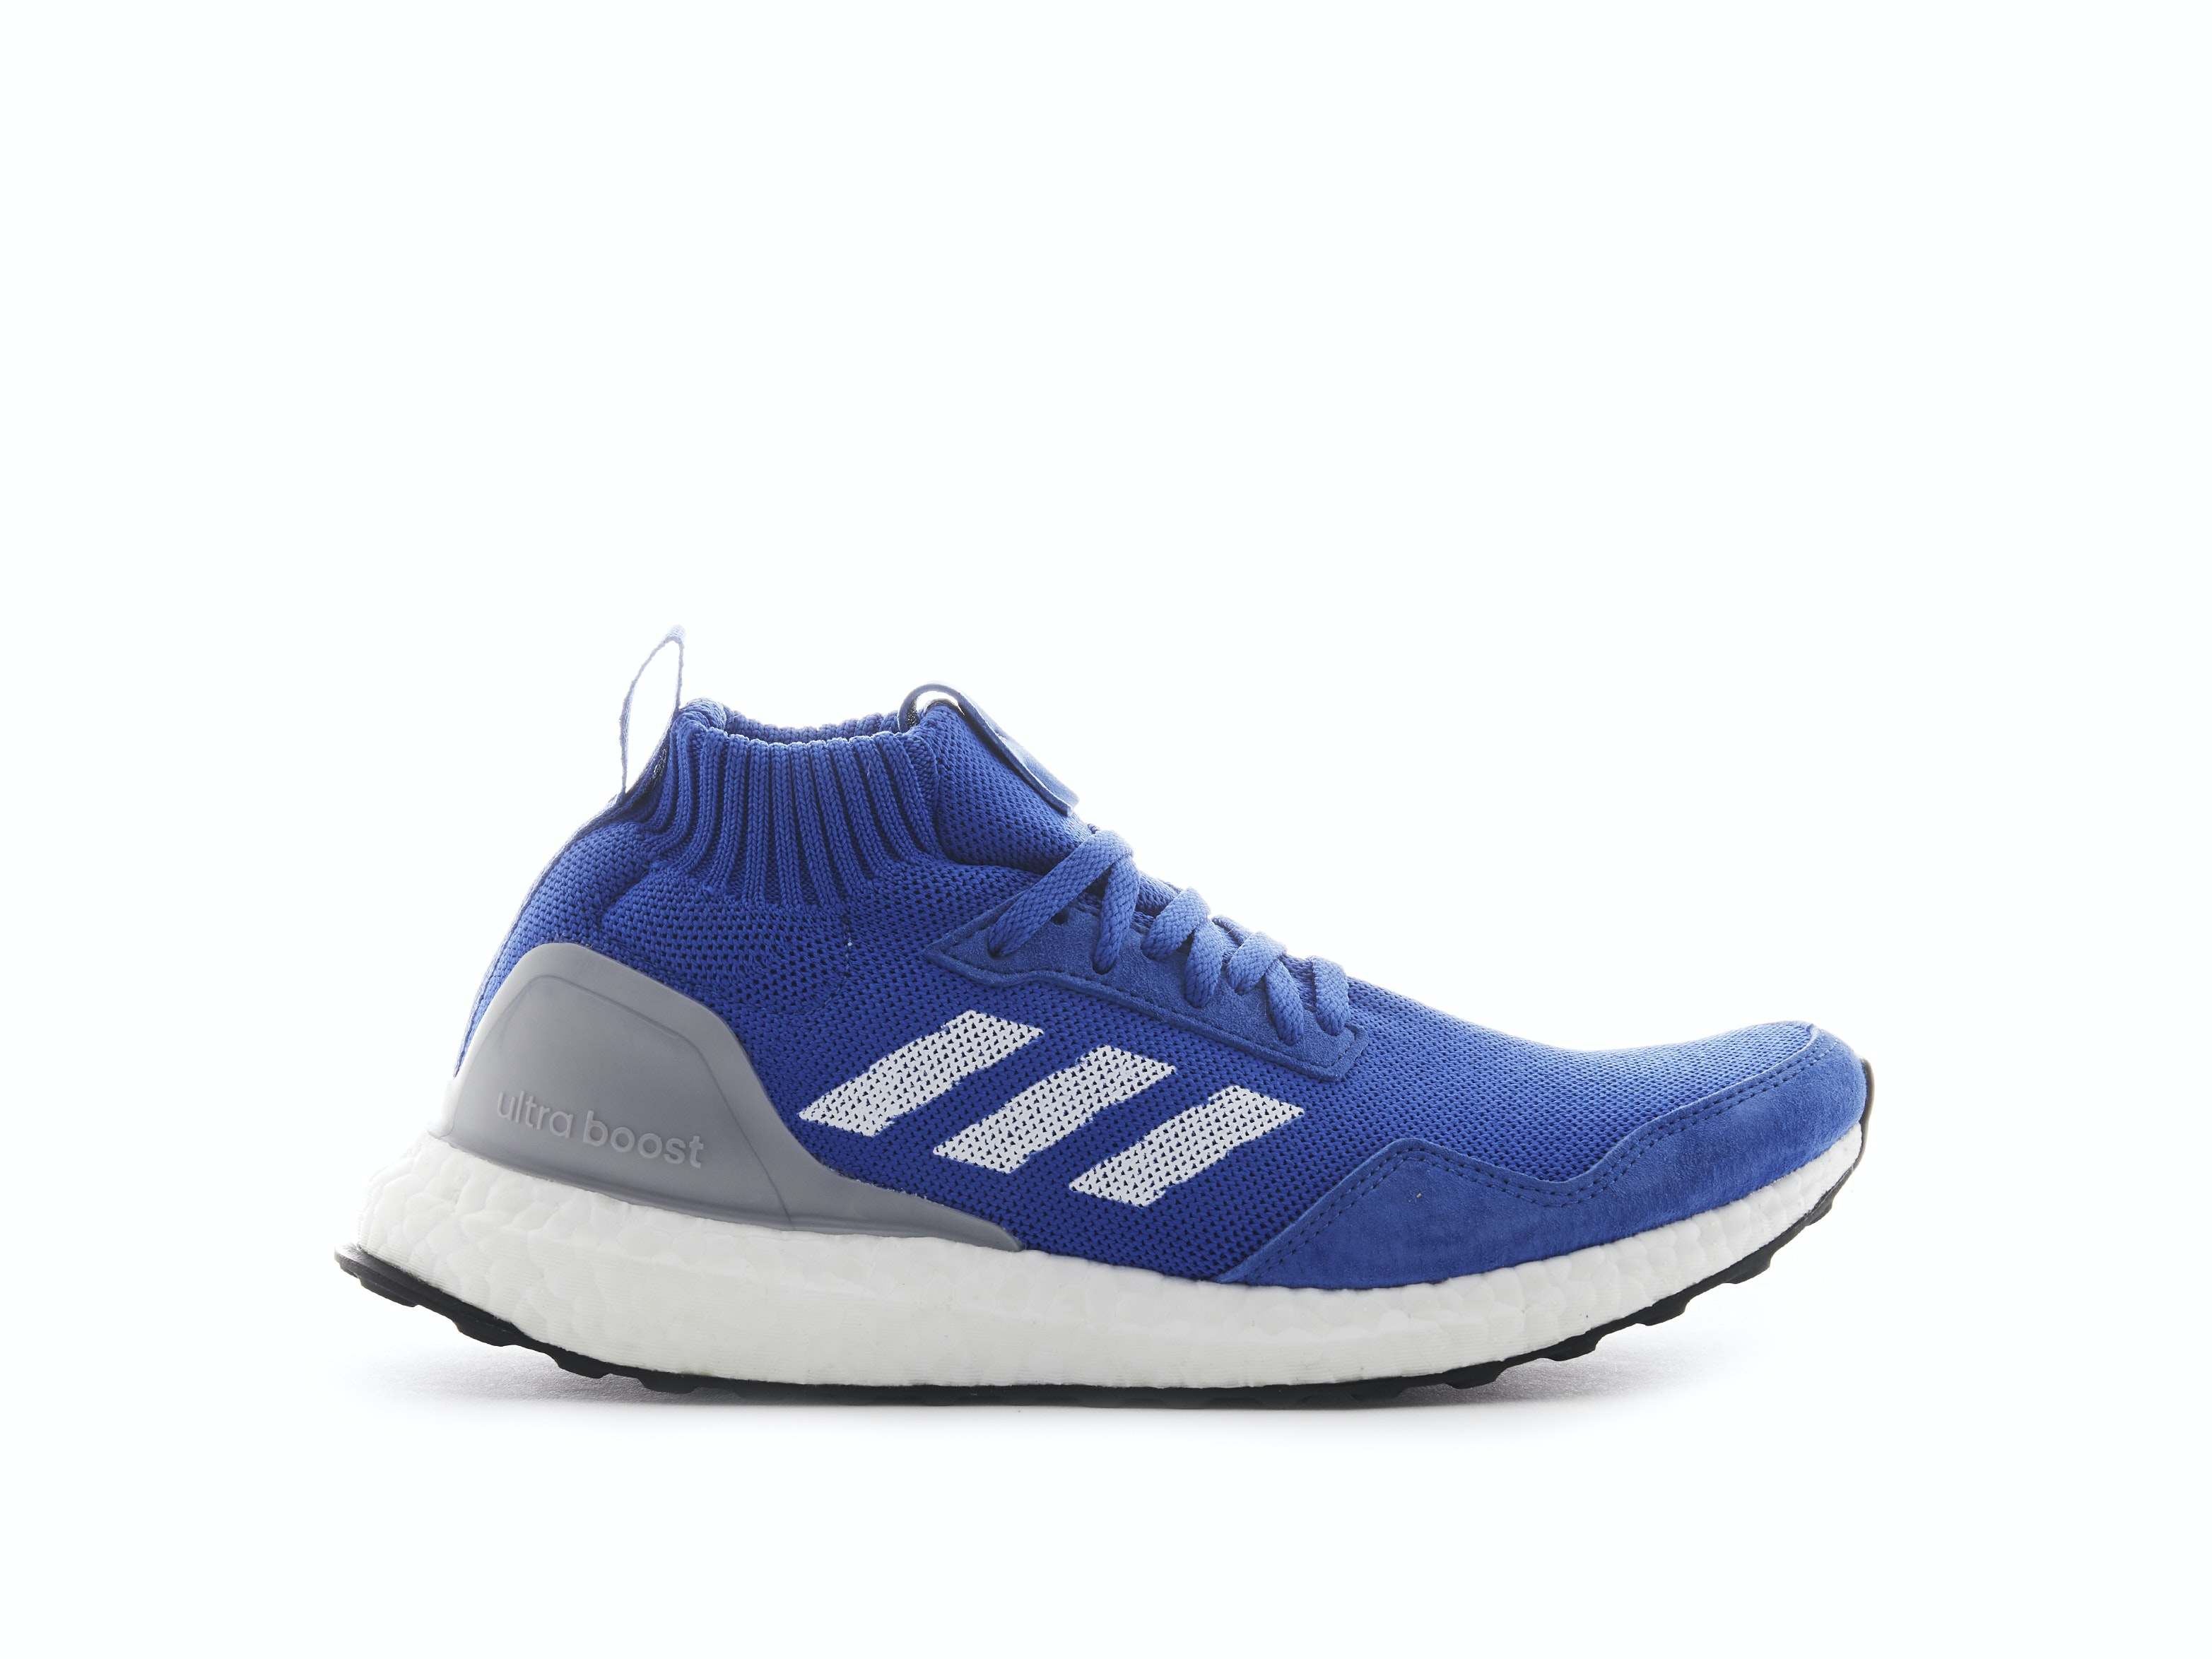 27b5be497dd97 Shop Run Thru Time UltraBoost Mid Online